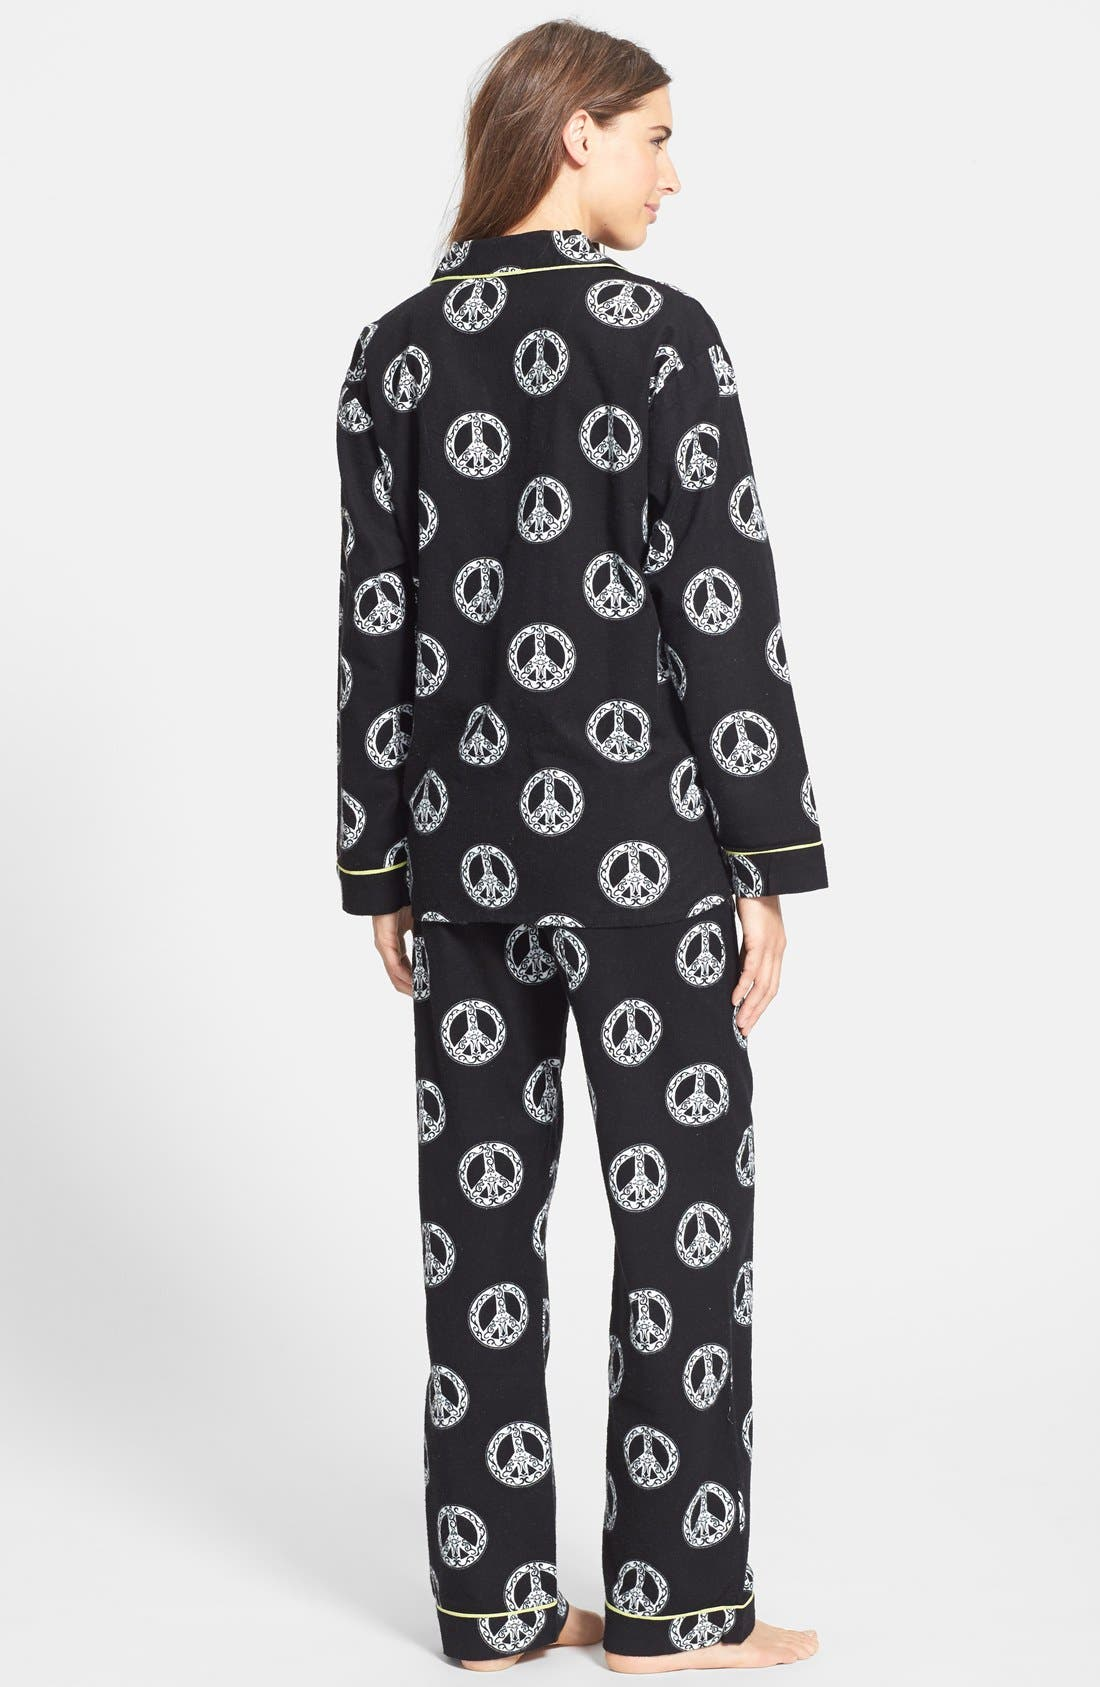 'Fall into Flannel' Pajamas,                             Alternate thumbnail 3, color,                             001